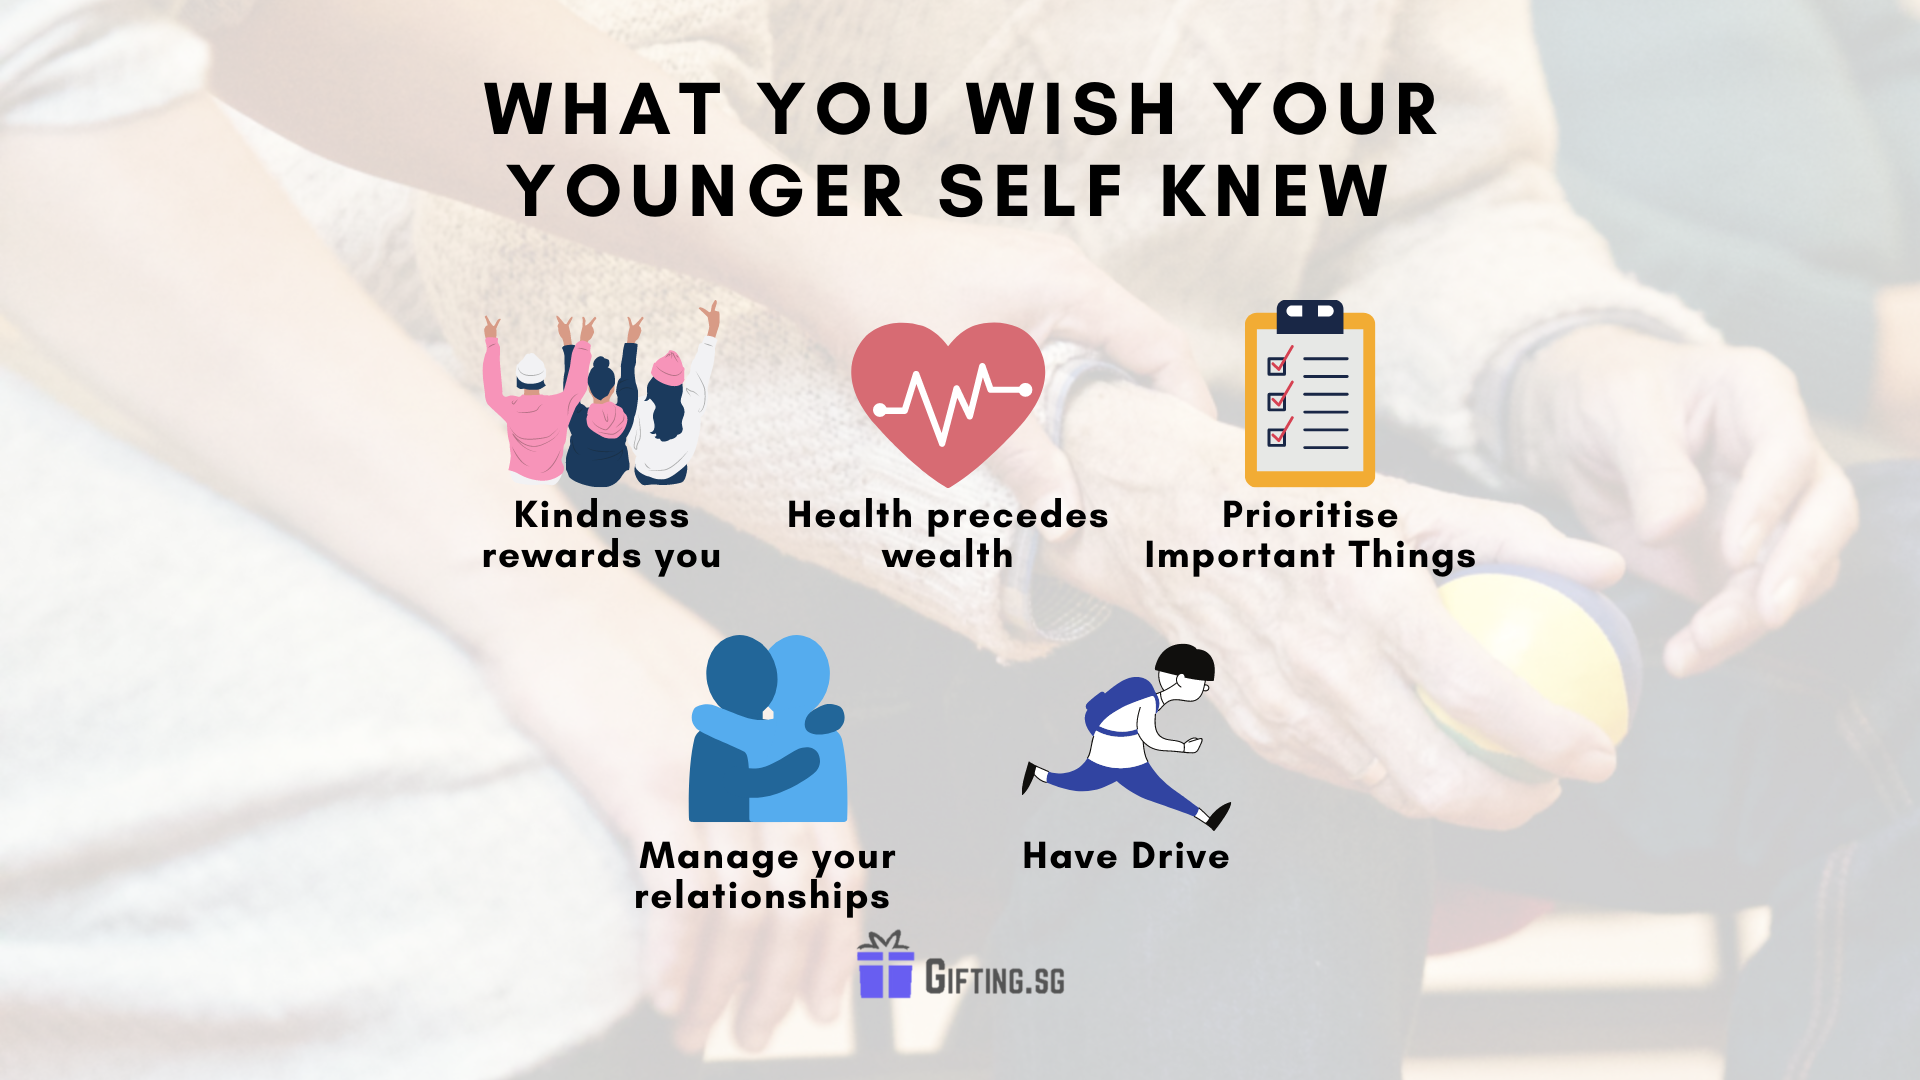 What You Wish Your Younger Self Knew